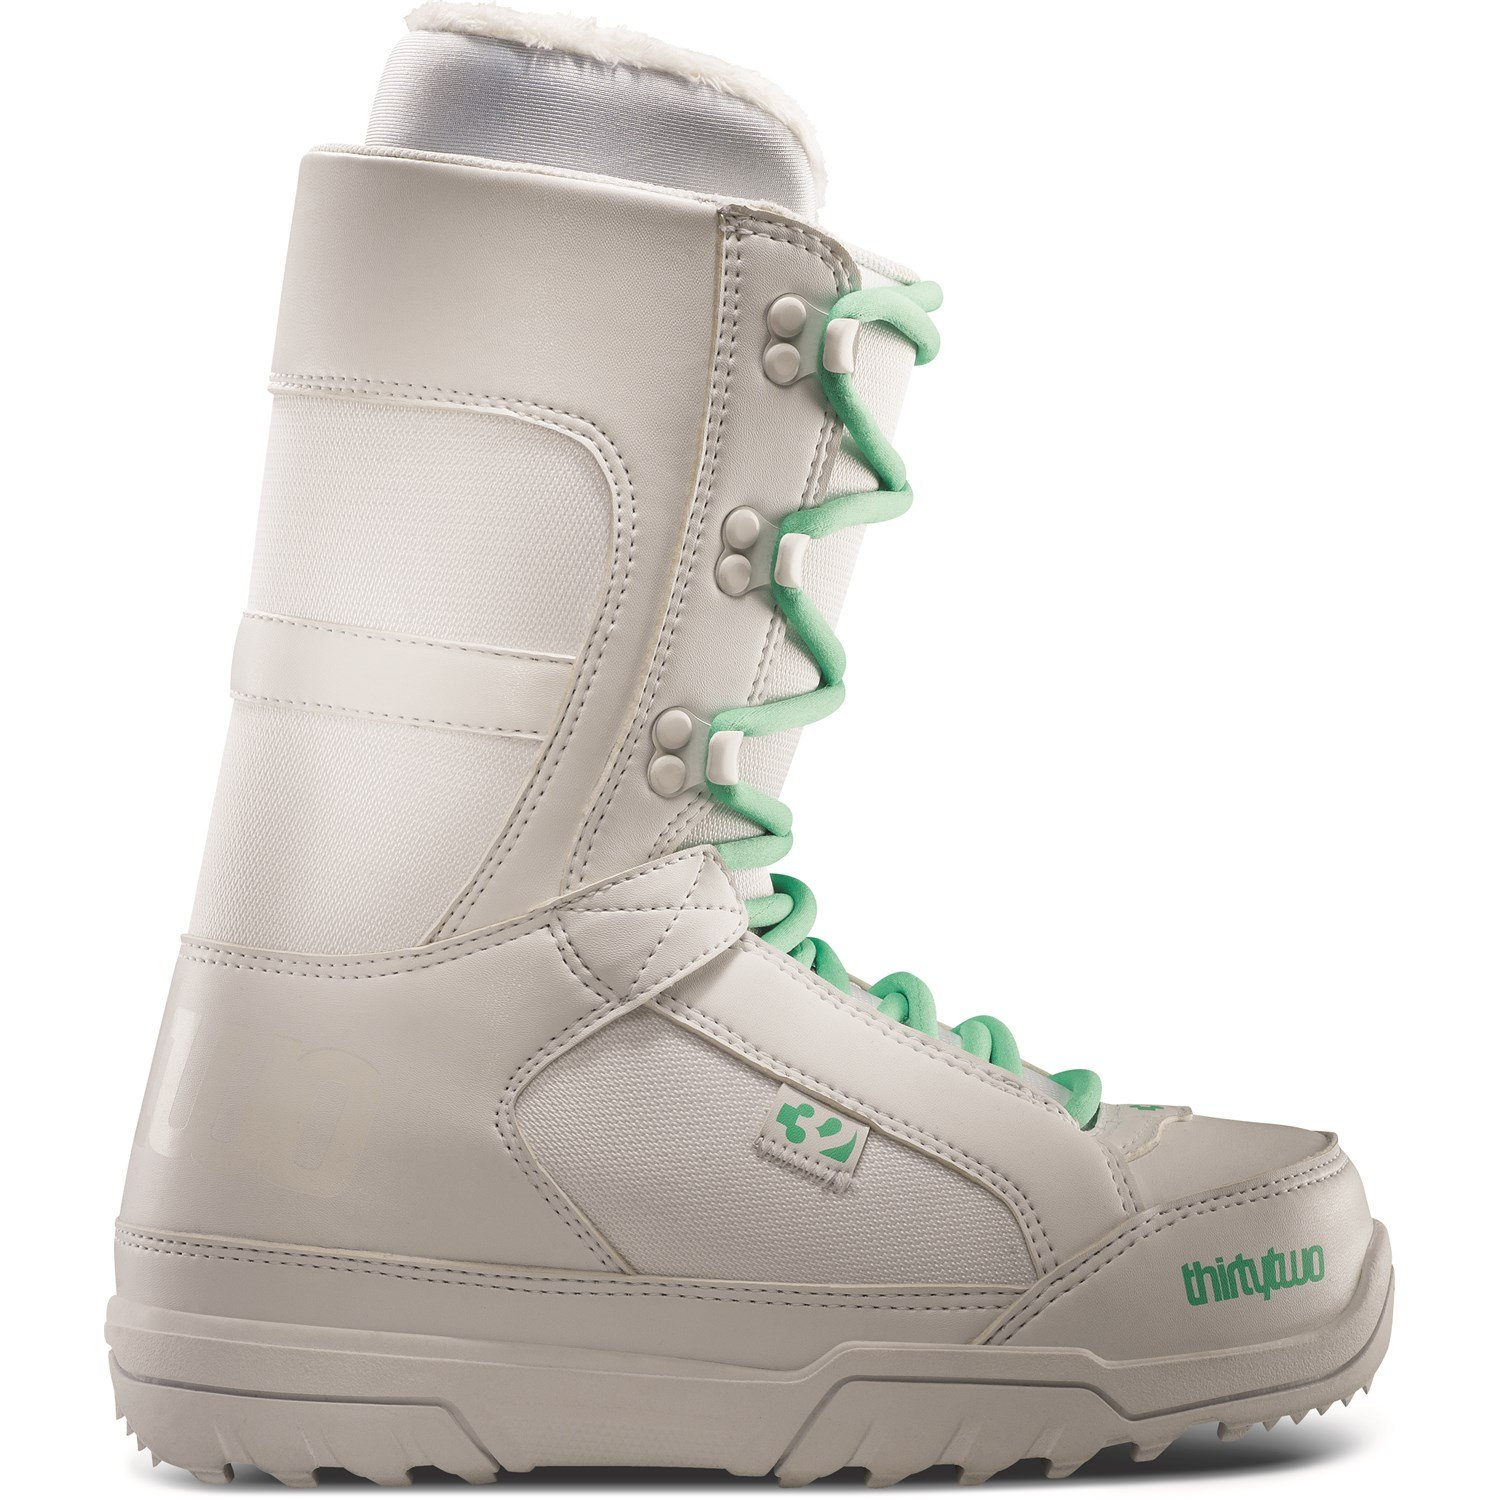 32 summit snowboard boots s 2013 evo outlet